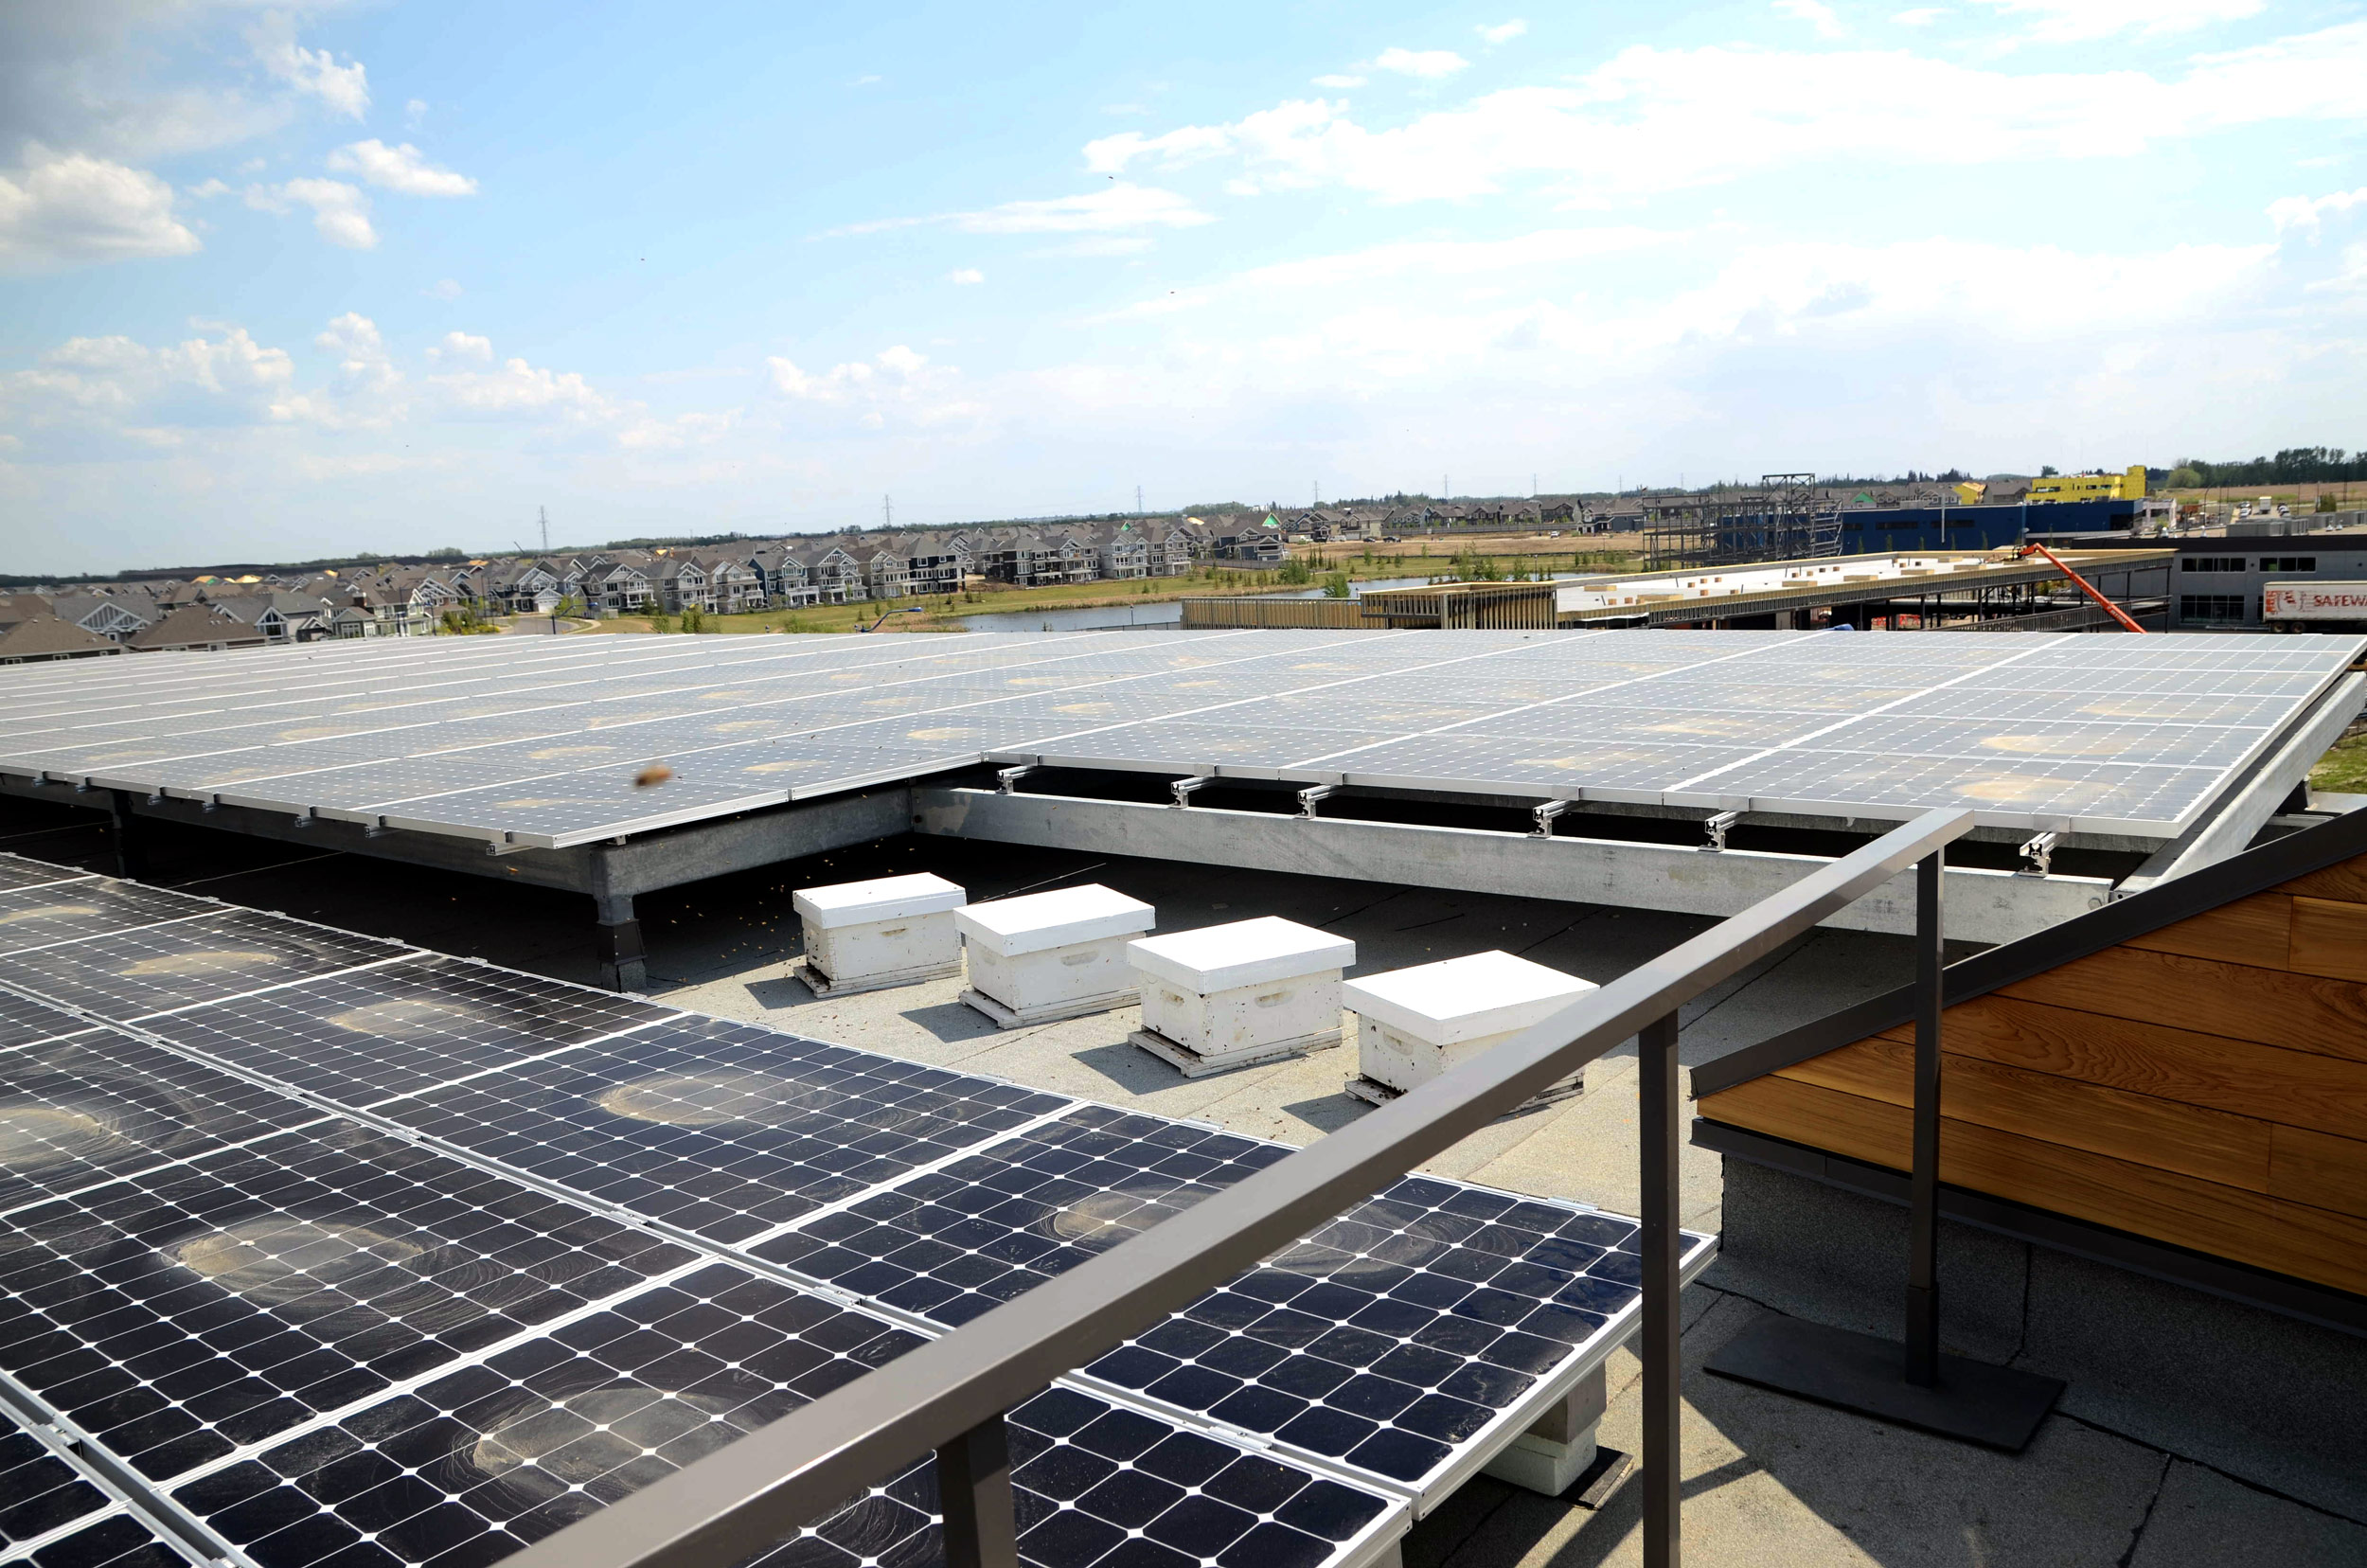 Beehives on the rooftop of the Mosaic Centre amongst the solar panel array